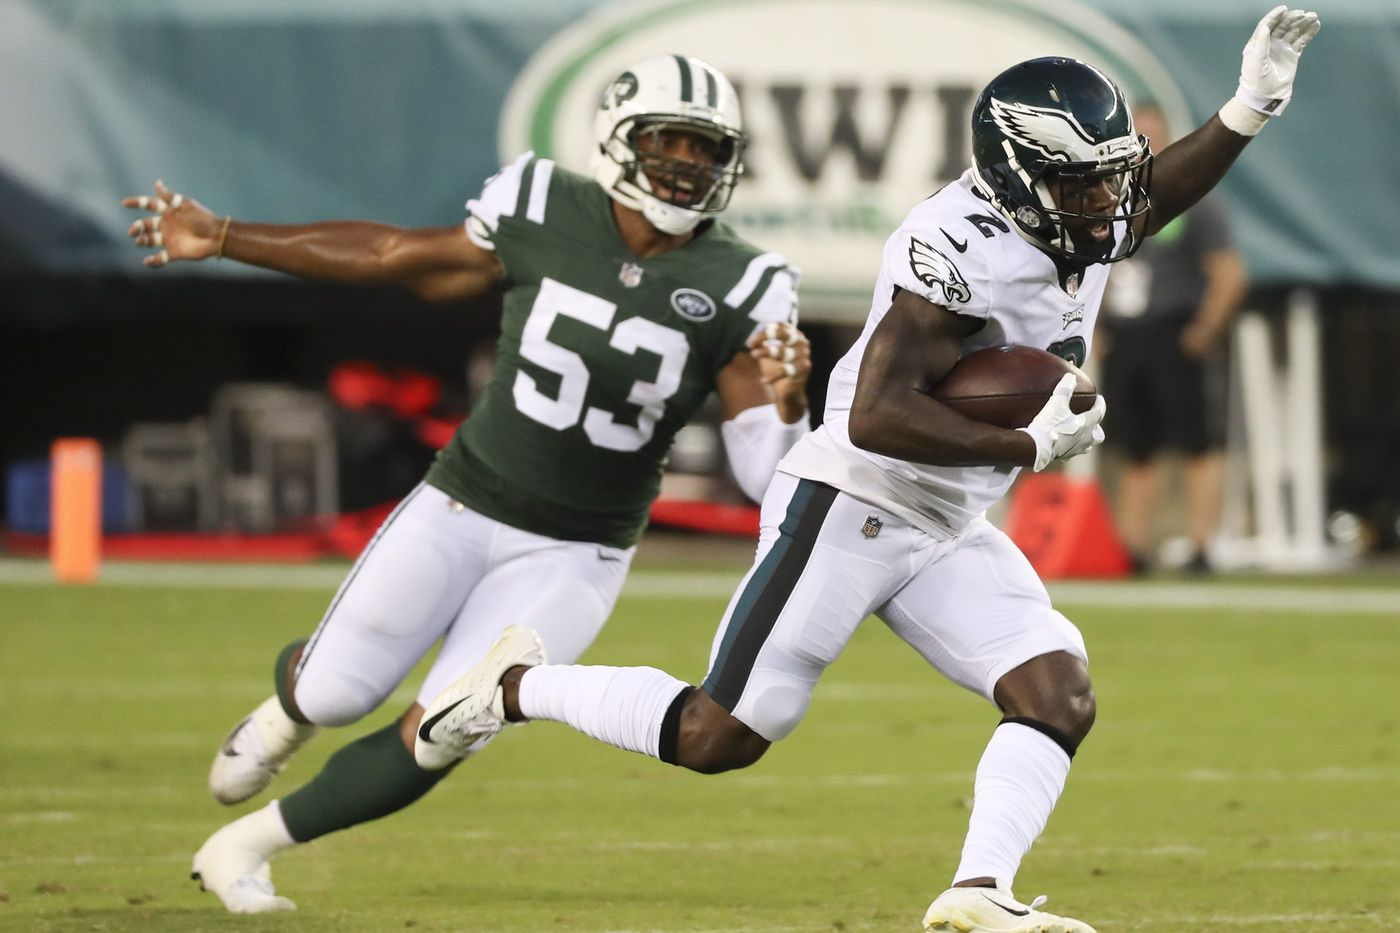 Eagles' DeAndre Carter states his case, amid a swarm of young receivers